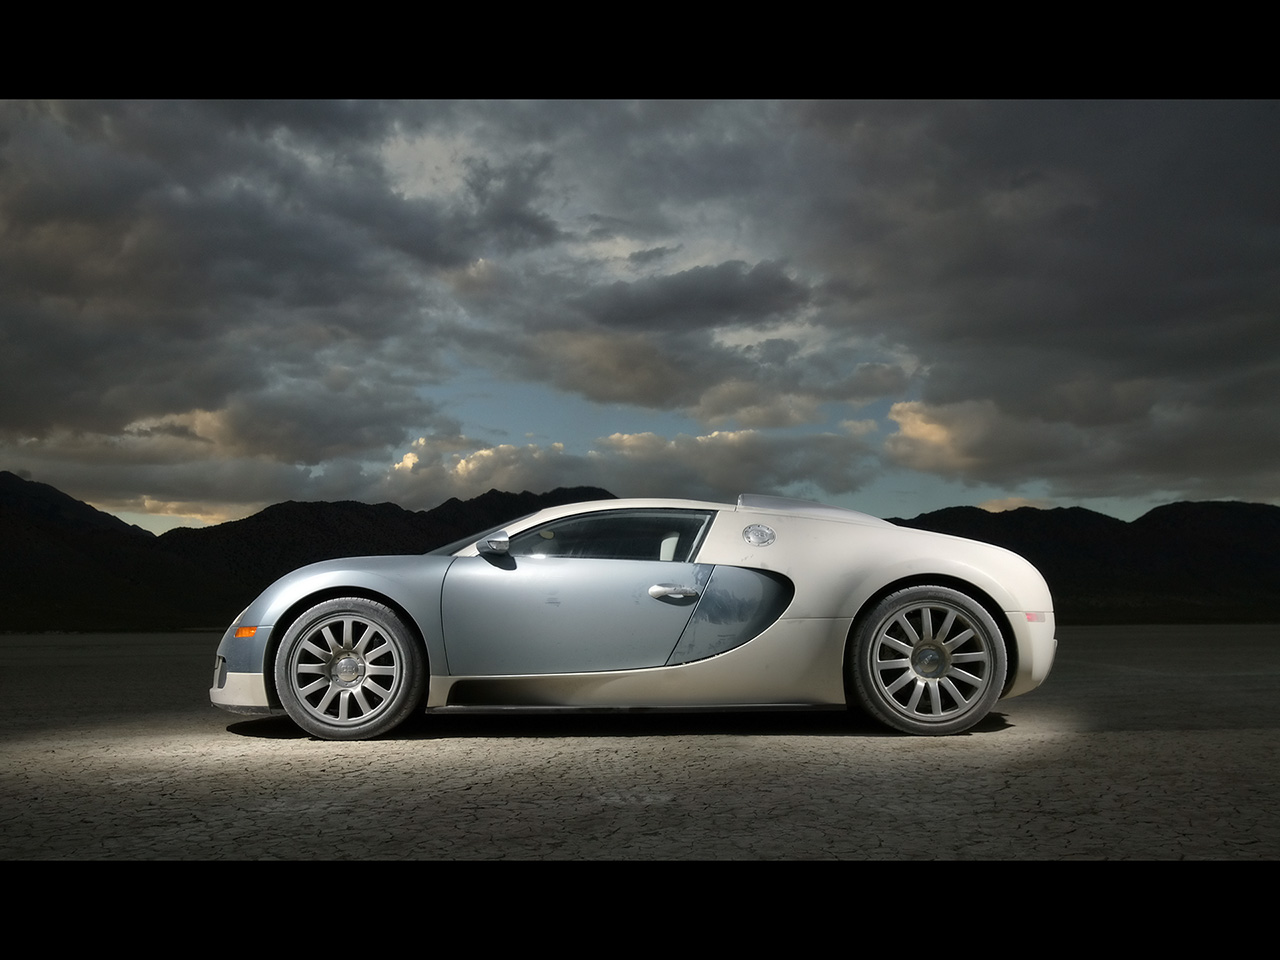 dr sous how much does it cost to own a bugatti veyron not buying just ma. Cars Review. Best American Auto & Cars Review